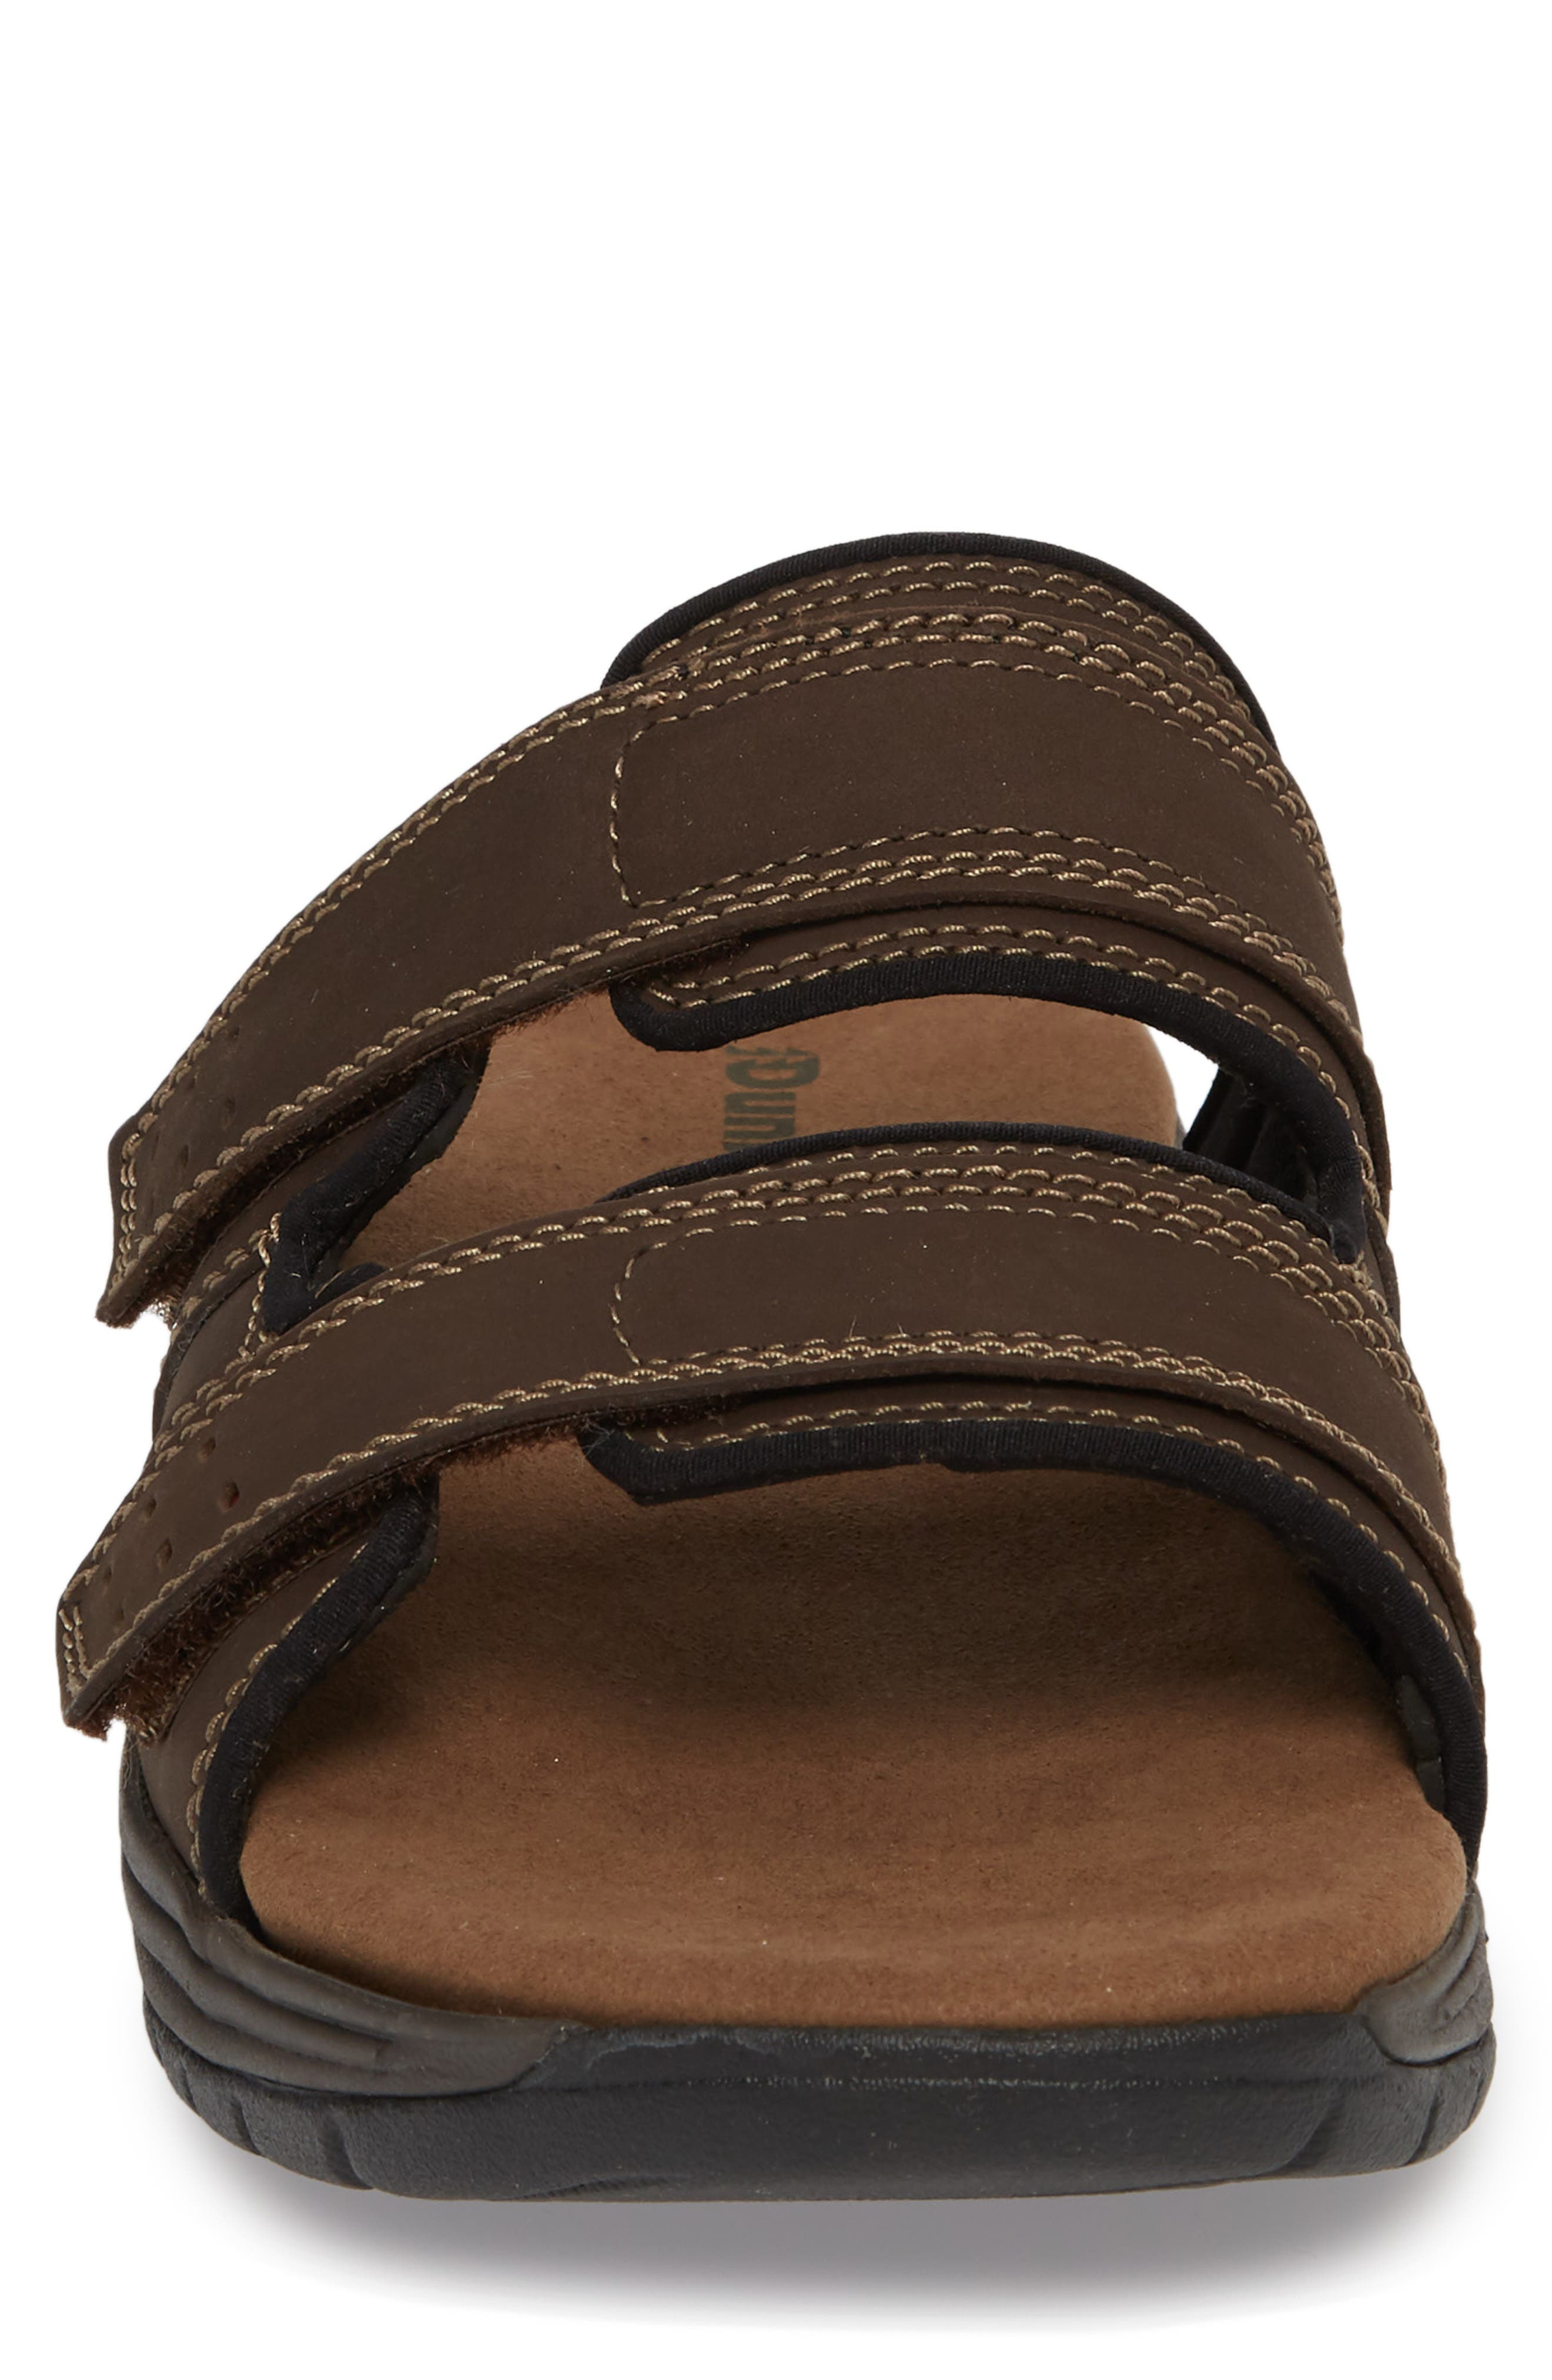 Newport Slide Sandal,                             Alternate thumbnail 4, color,                             Dark Brown Leather